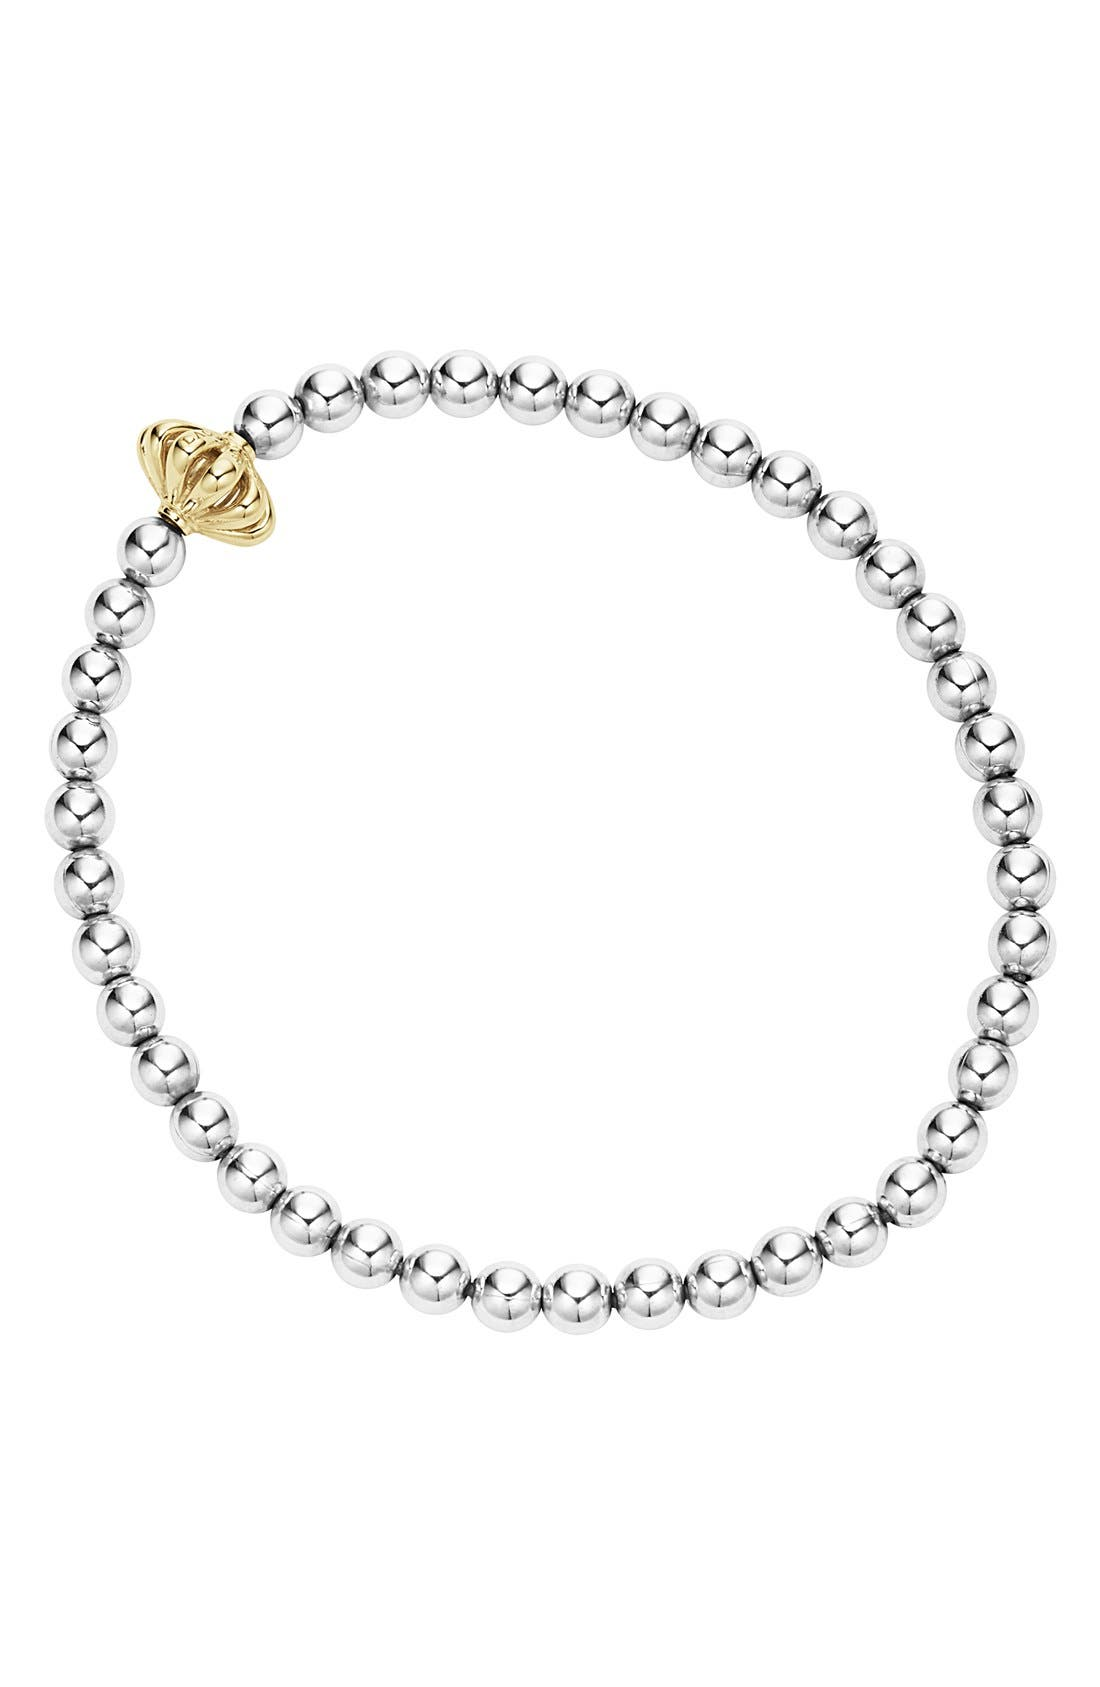 Caviar Icon Ball Bracelet,                         Main,                         color, Silver/ Gold Birdcage